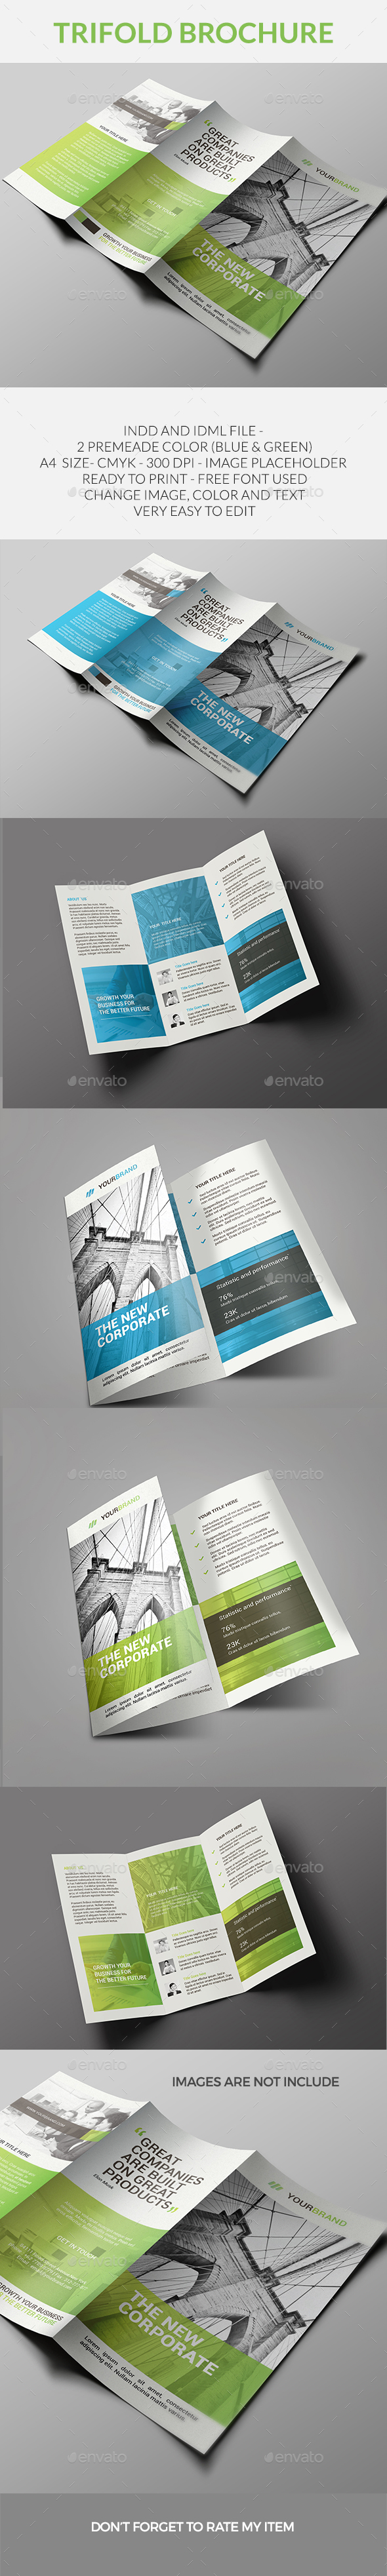 Corporate Trifold Brochure Template InDesign INDD #design Download ...